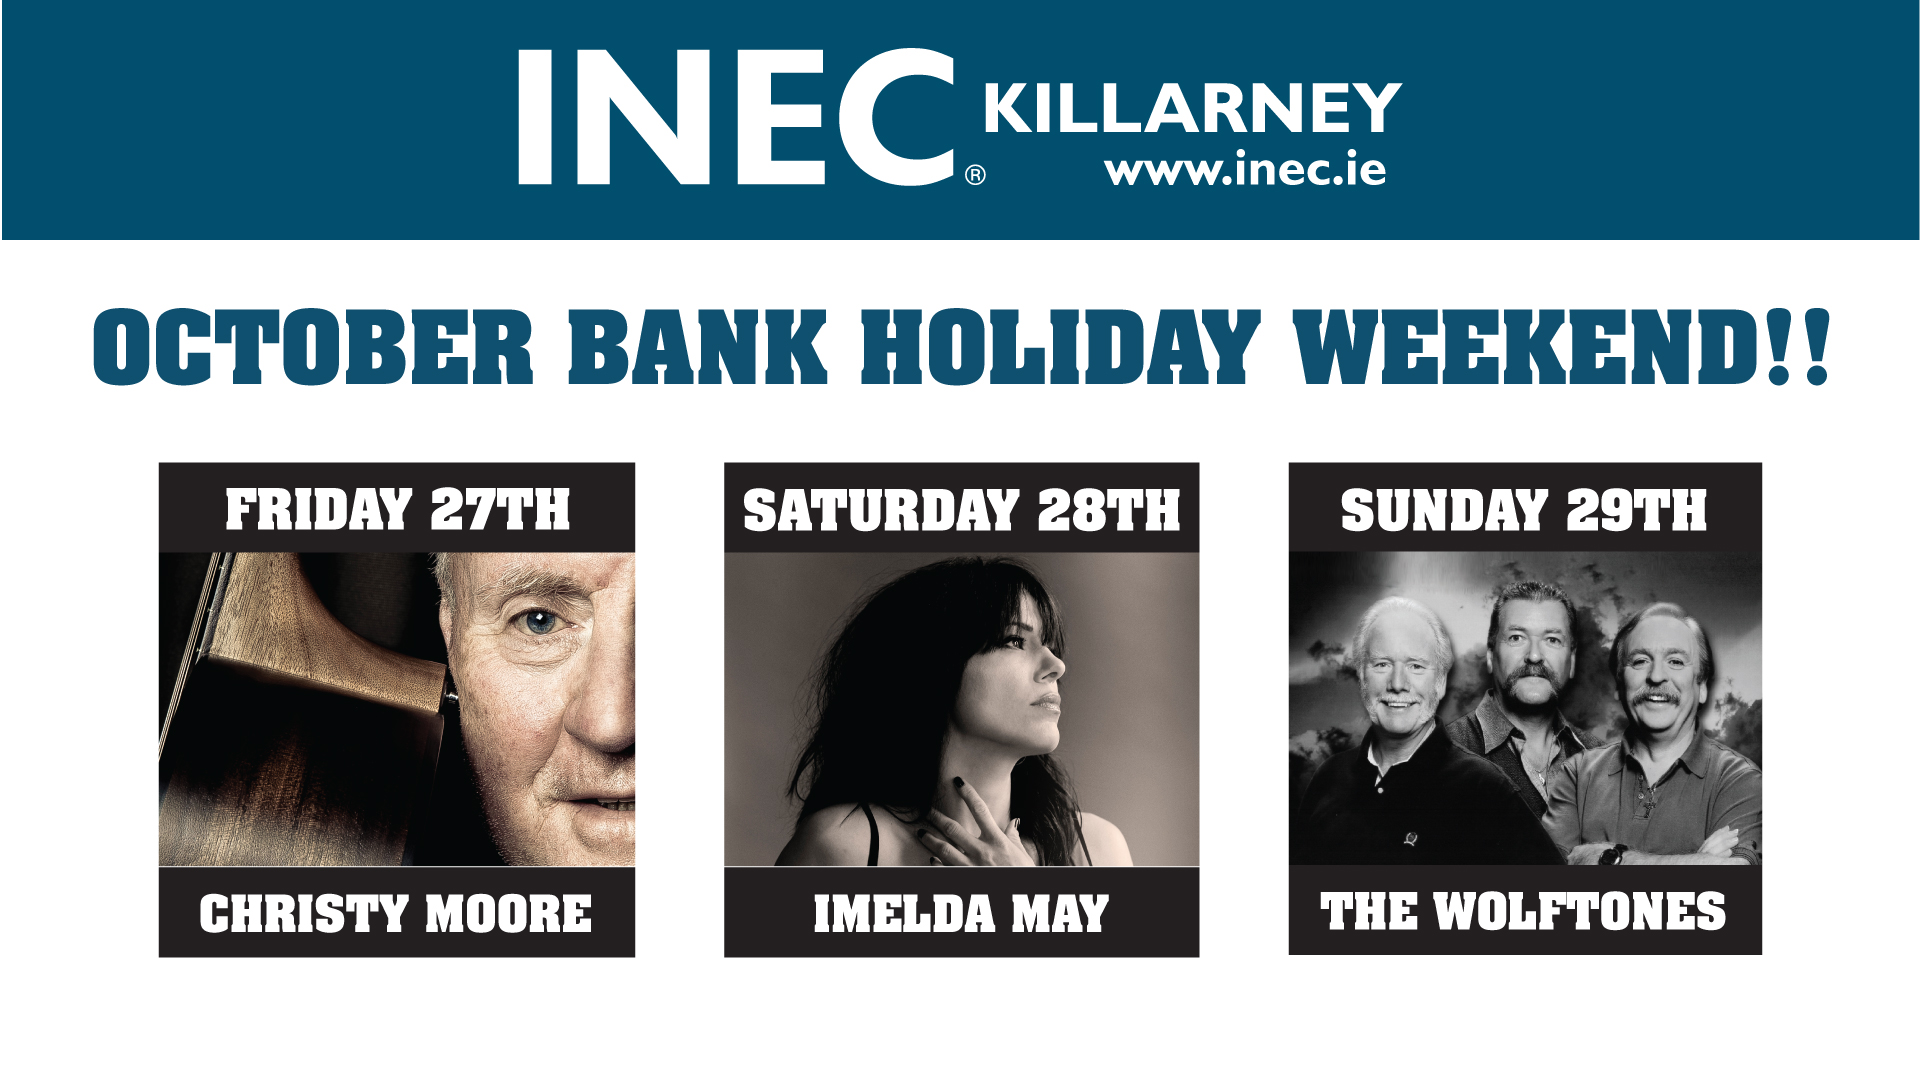 October Bank Holiday Weekend at the INEC KIllarney